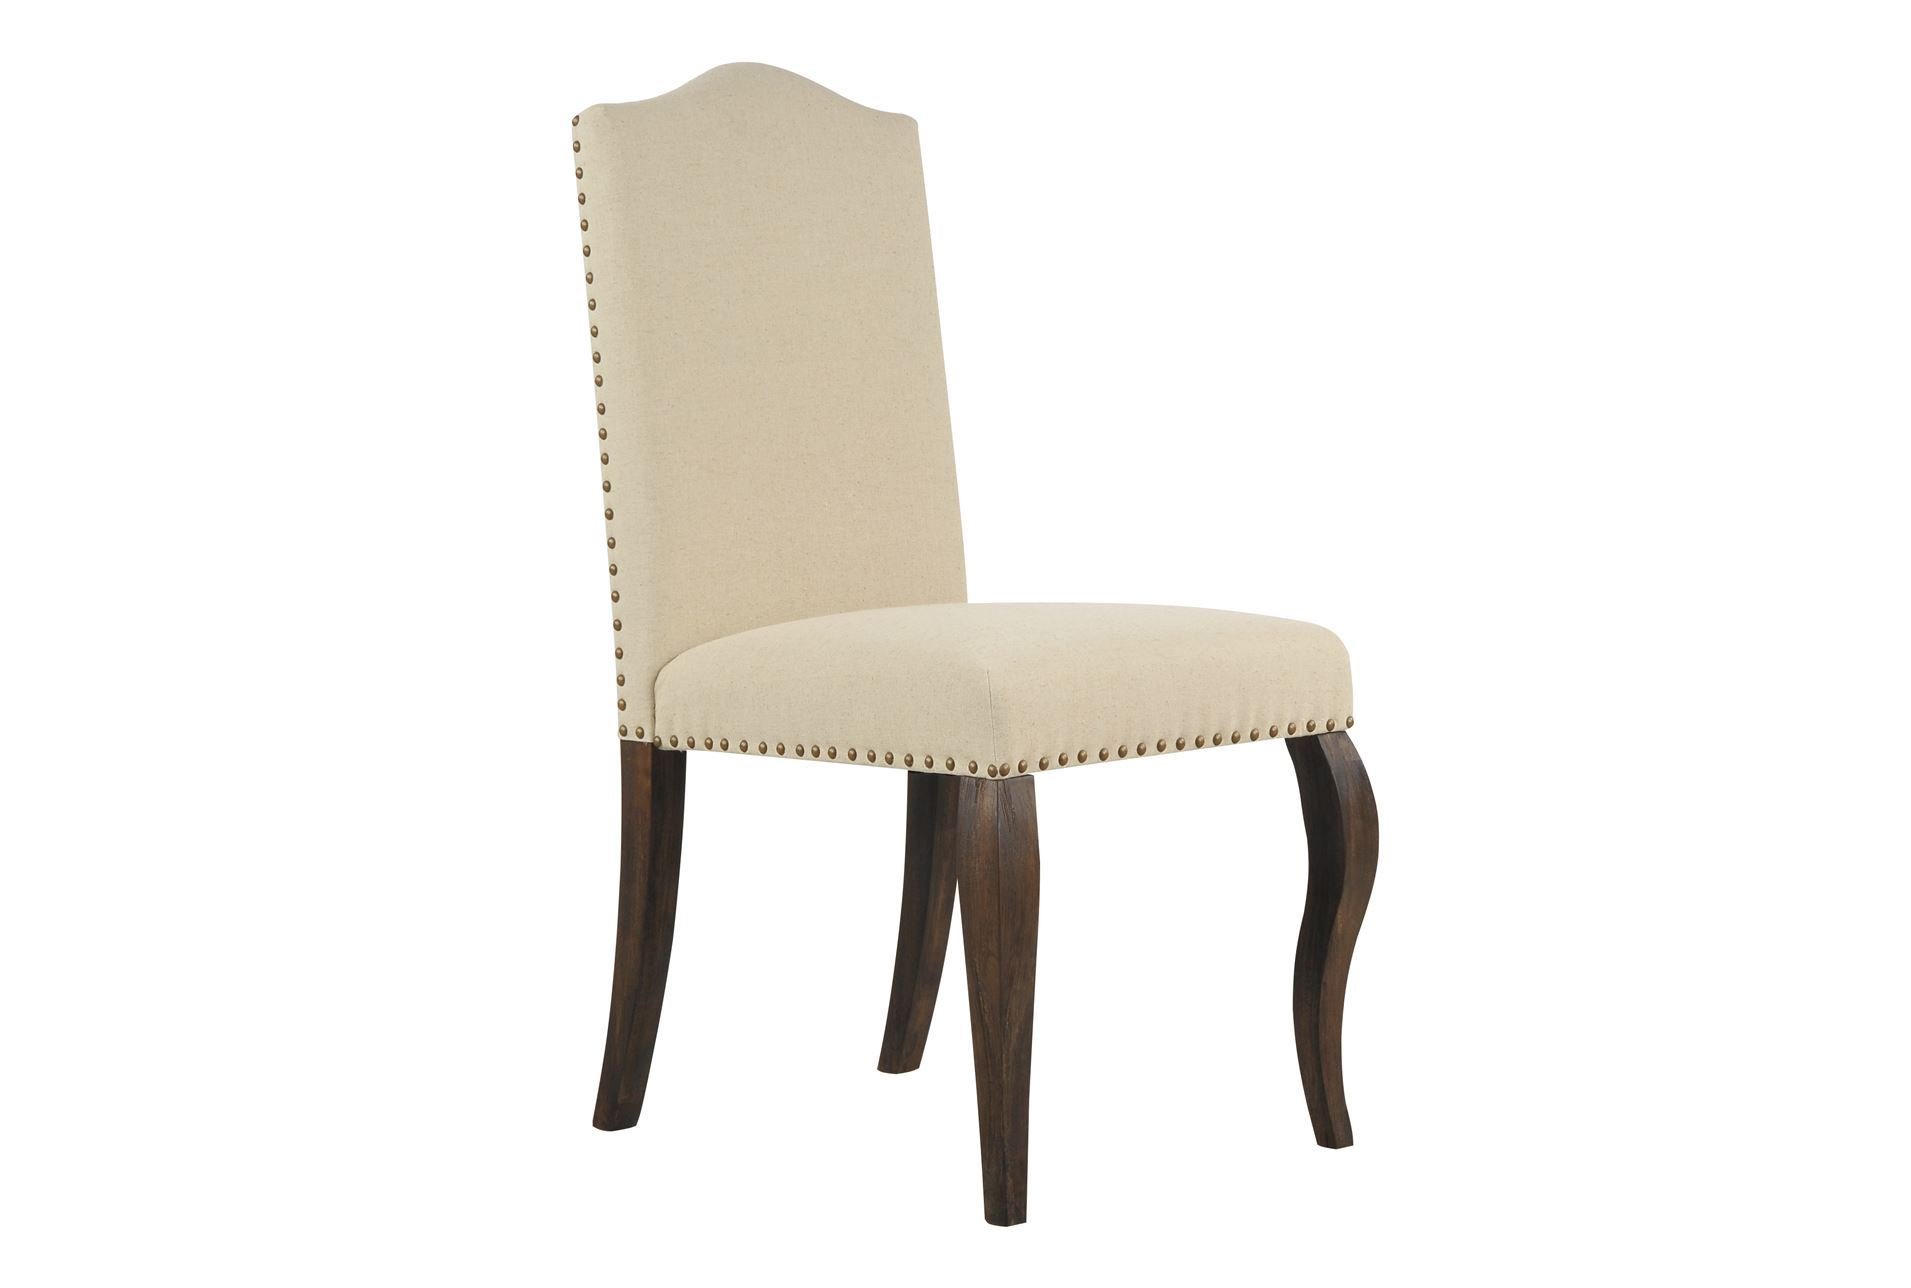 Diego upholstered side chair living spaces - Upholstered chairs for small spaces concept ...